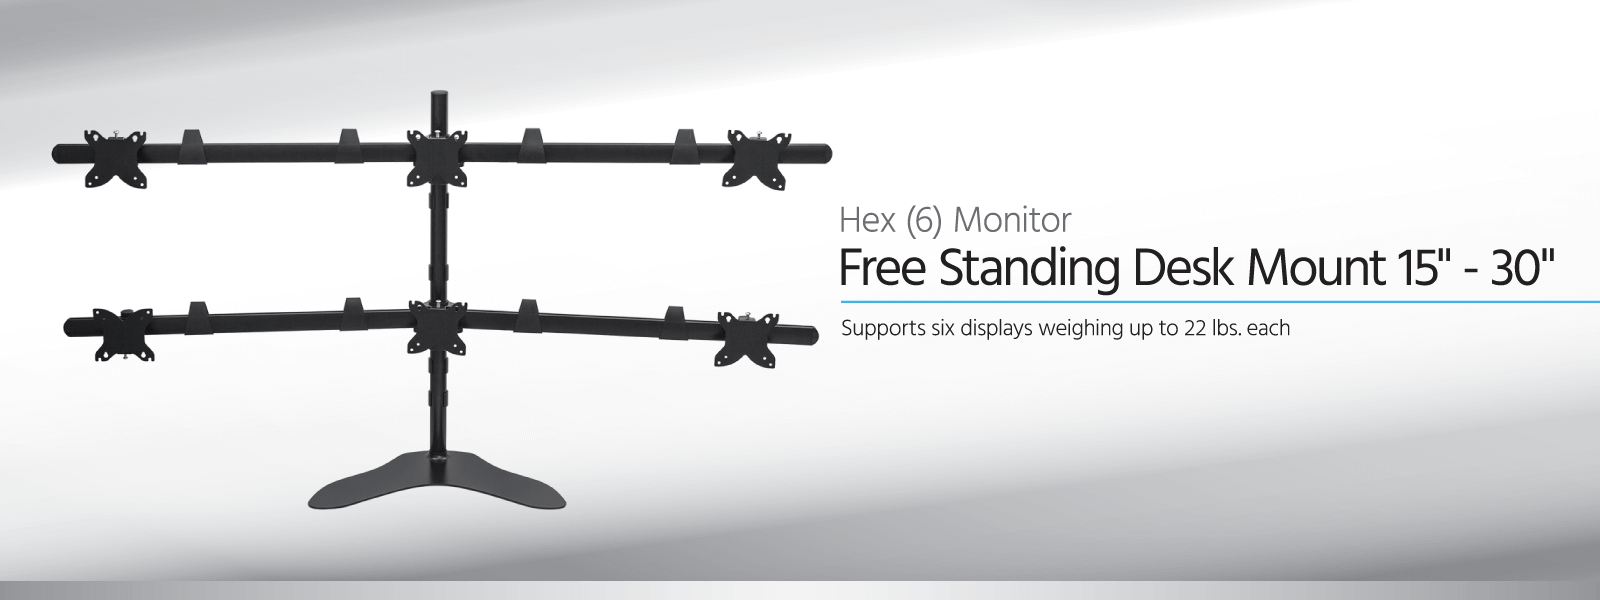 Hex (6) Monitor Free Standing Desk Mount